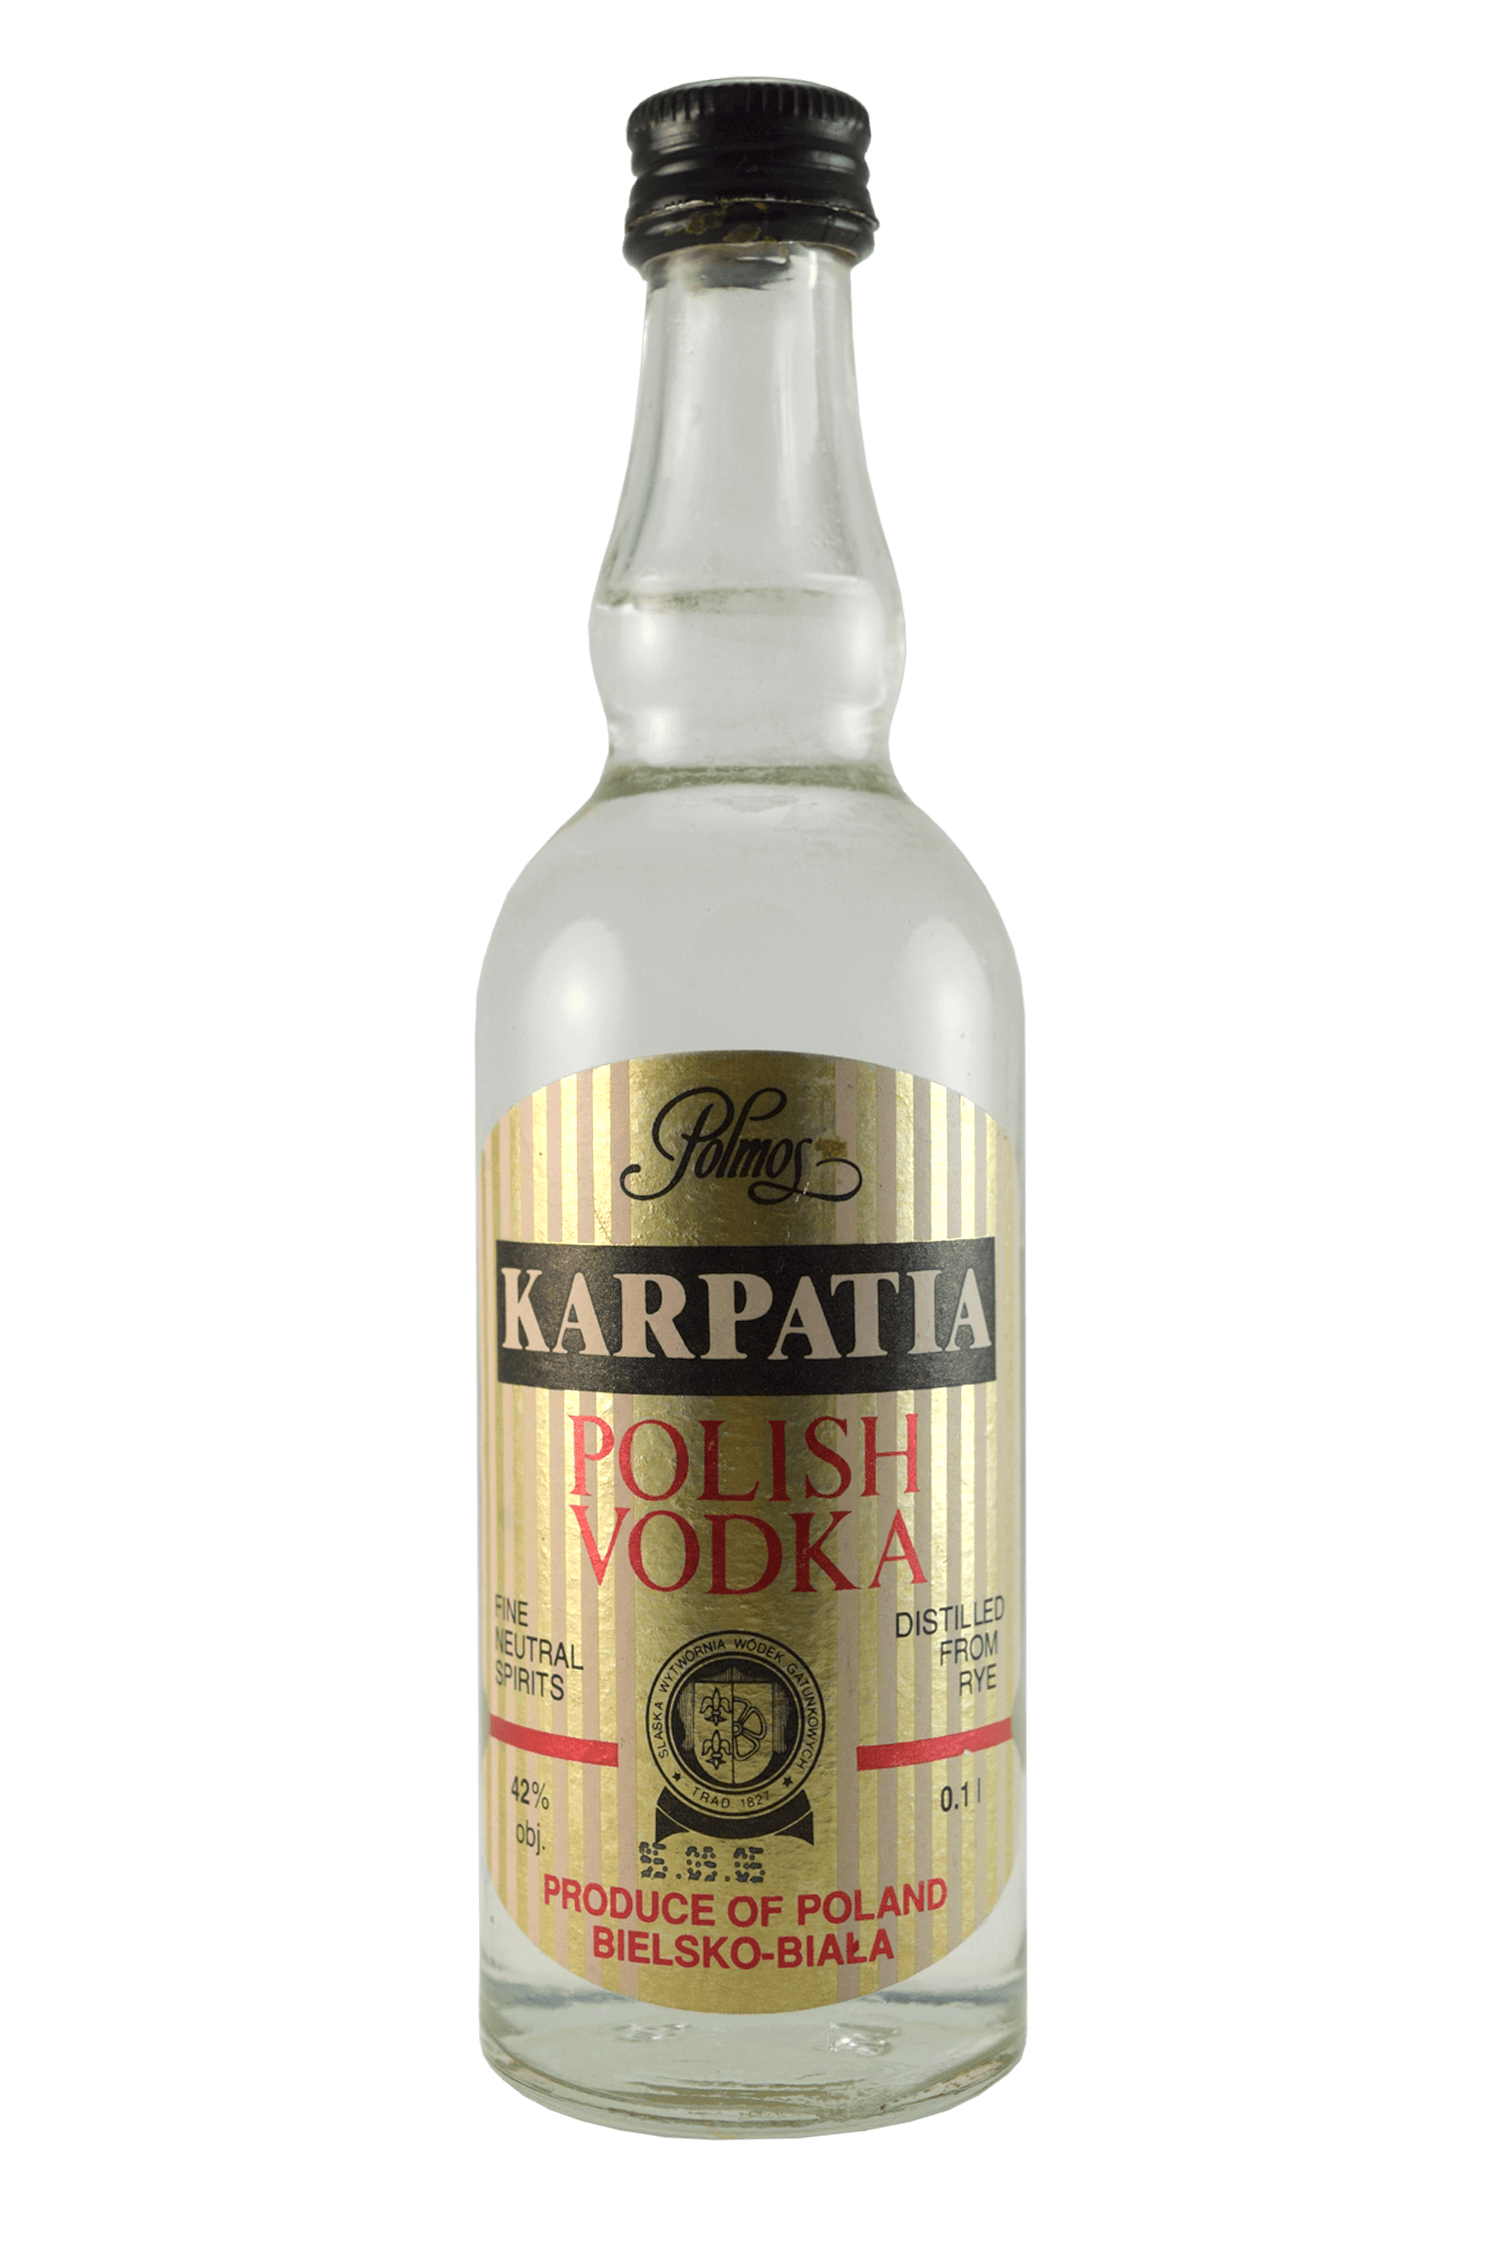 Karpatia Polish Vodka